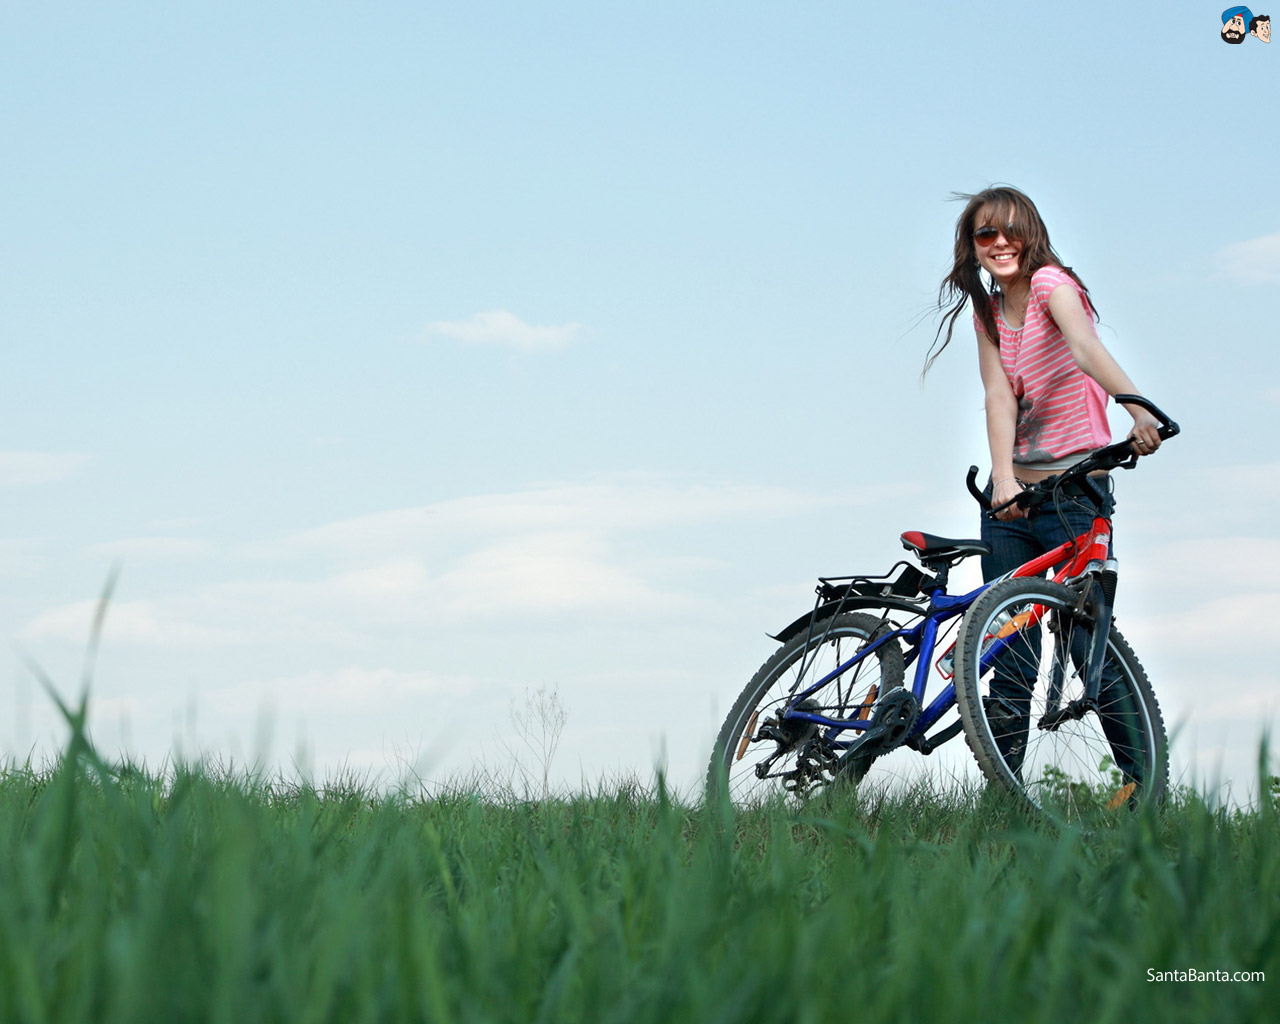 Korean Cute Girl Hd Wallpaper Download Bicycle Wallpapers Hd Most Beautiful Places In